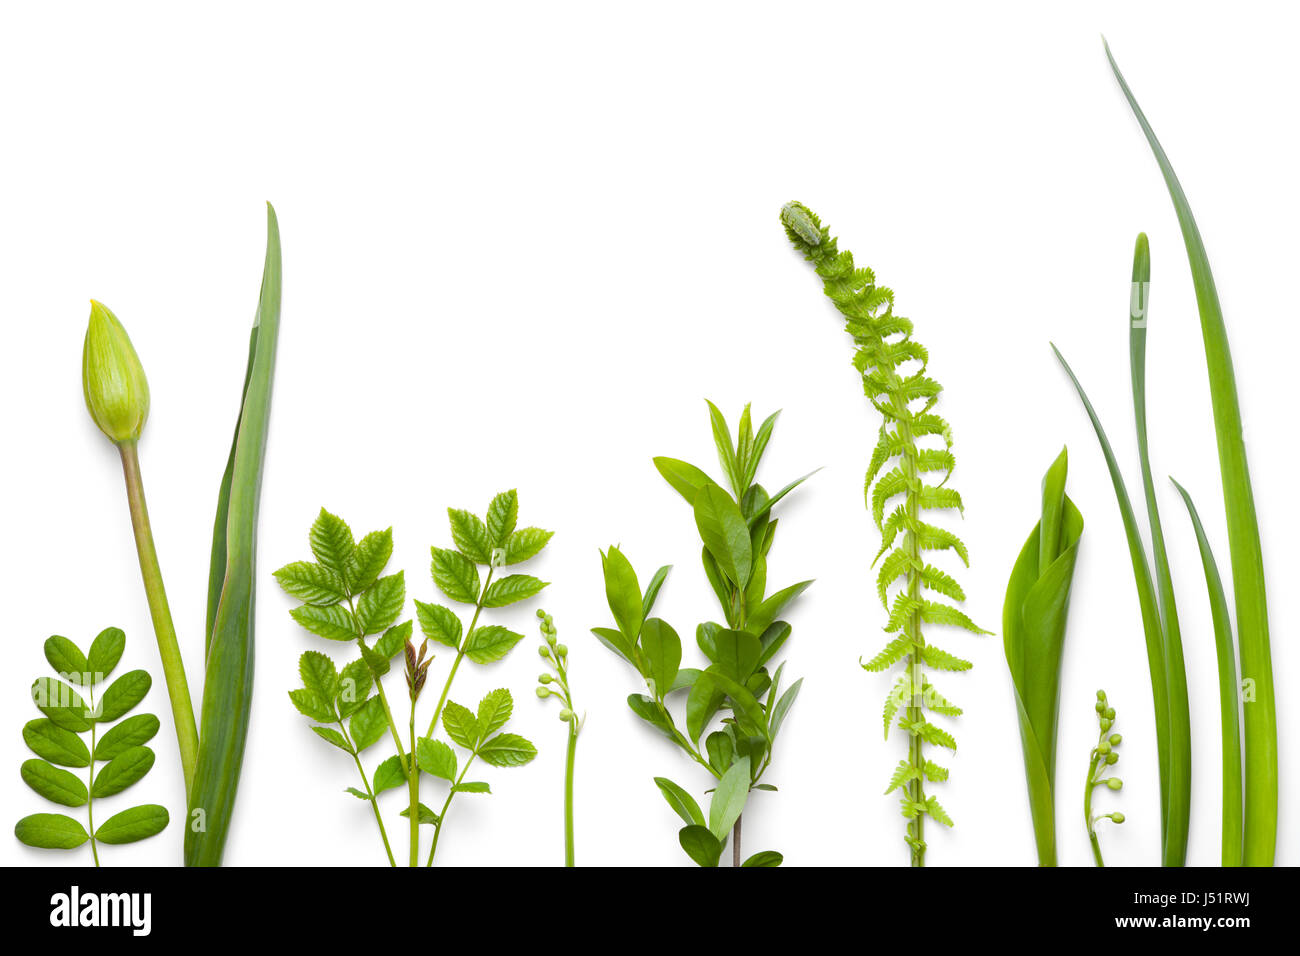 Green plants isolated on white background. Flat lay. Top view - Stock Image